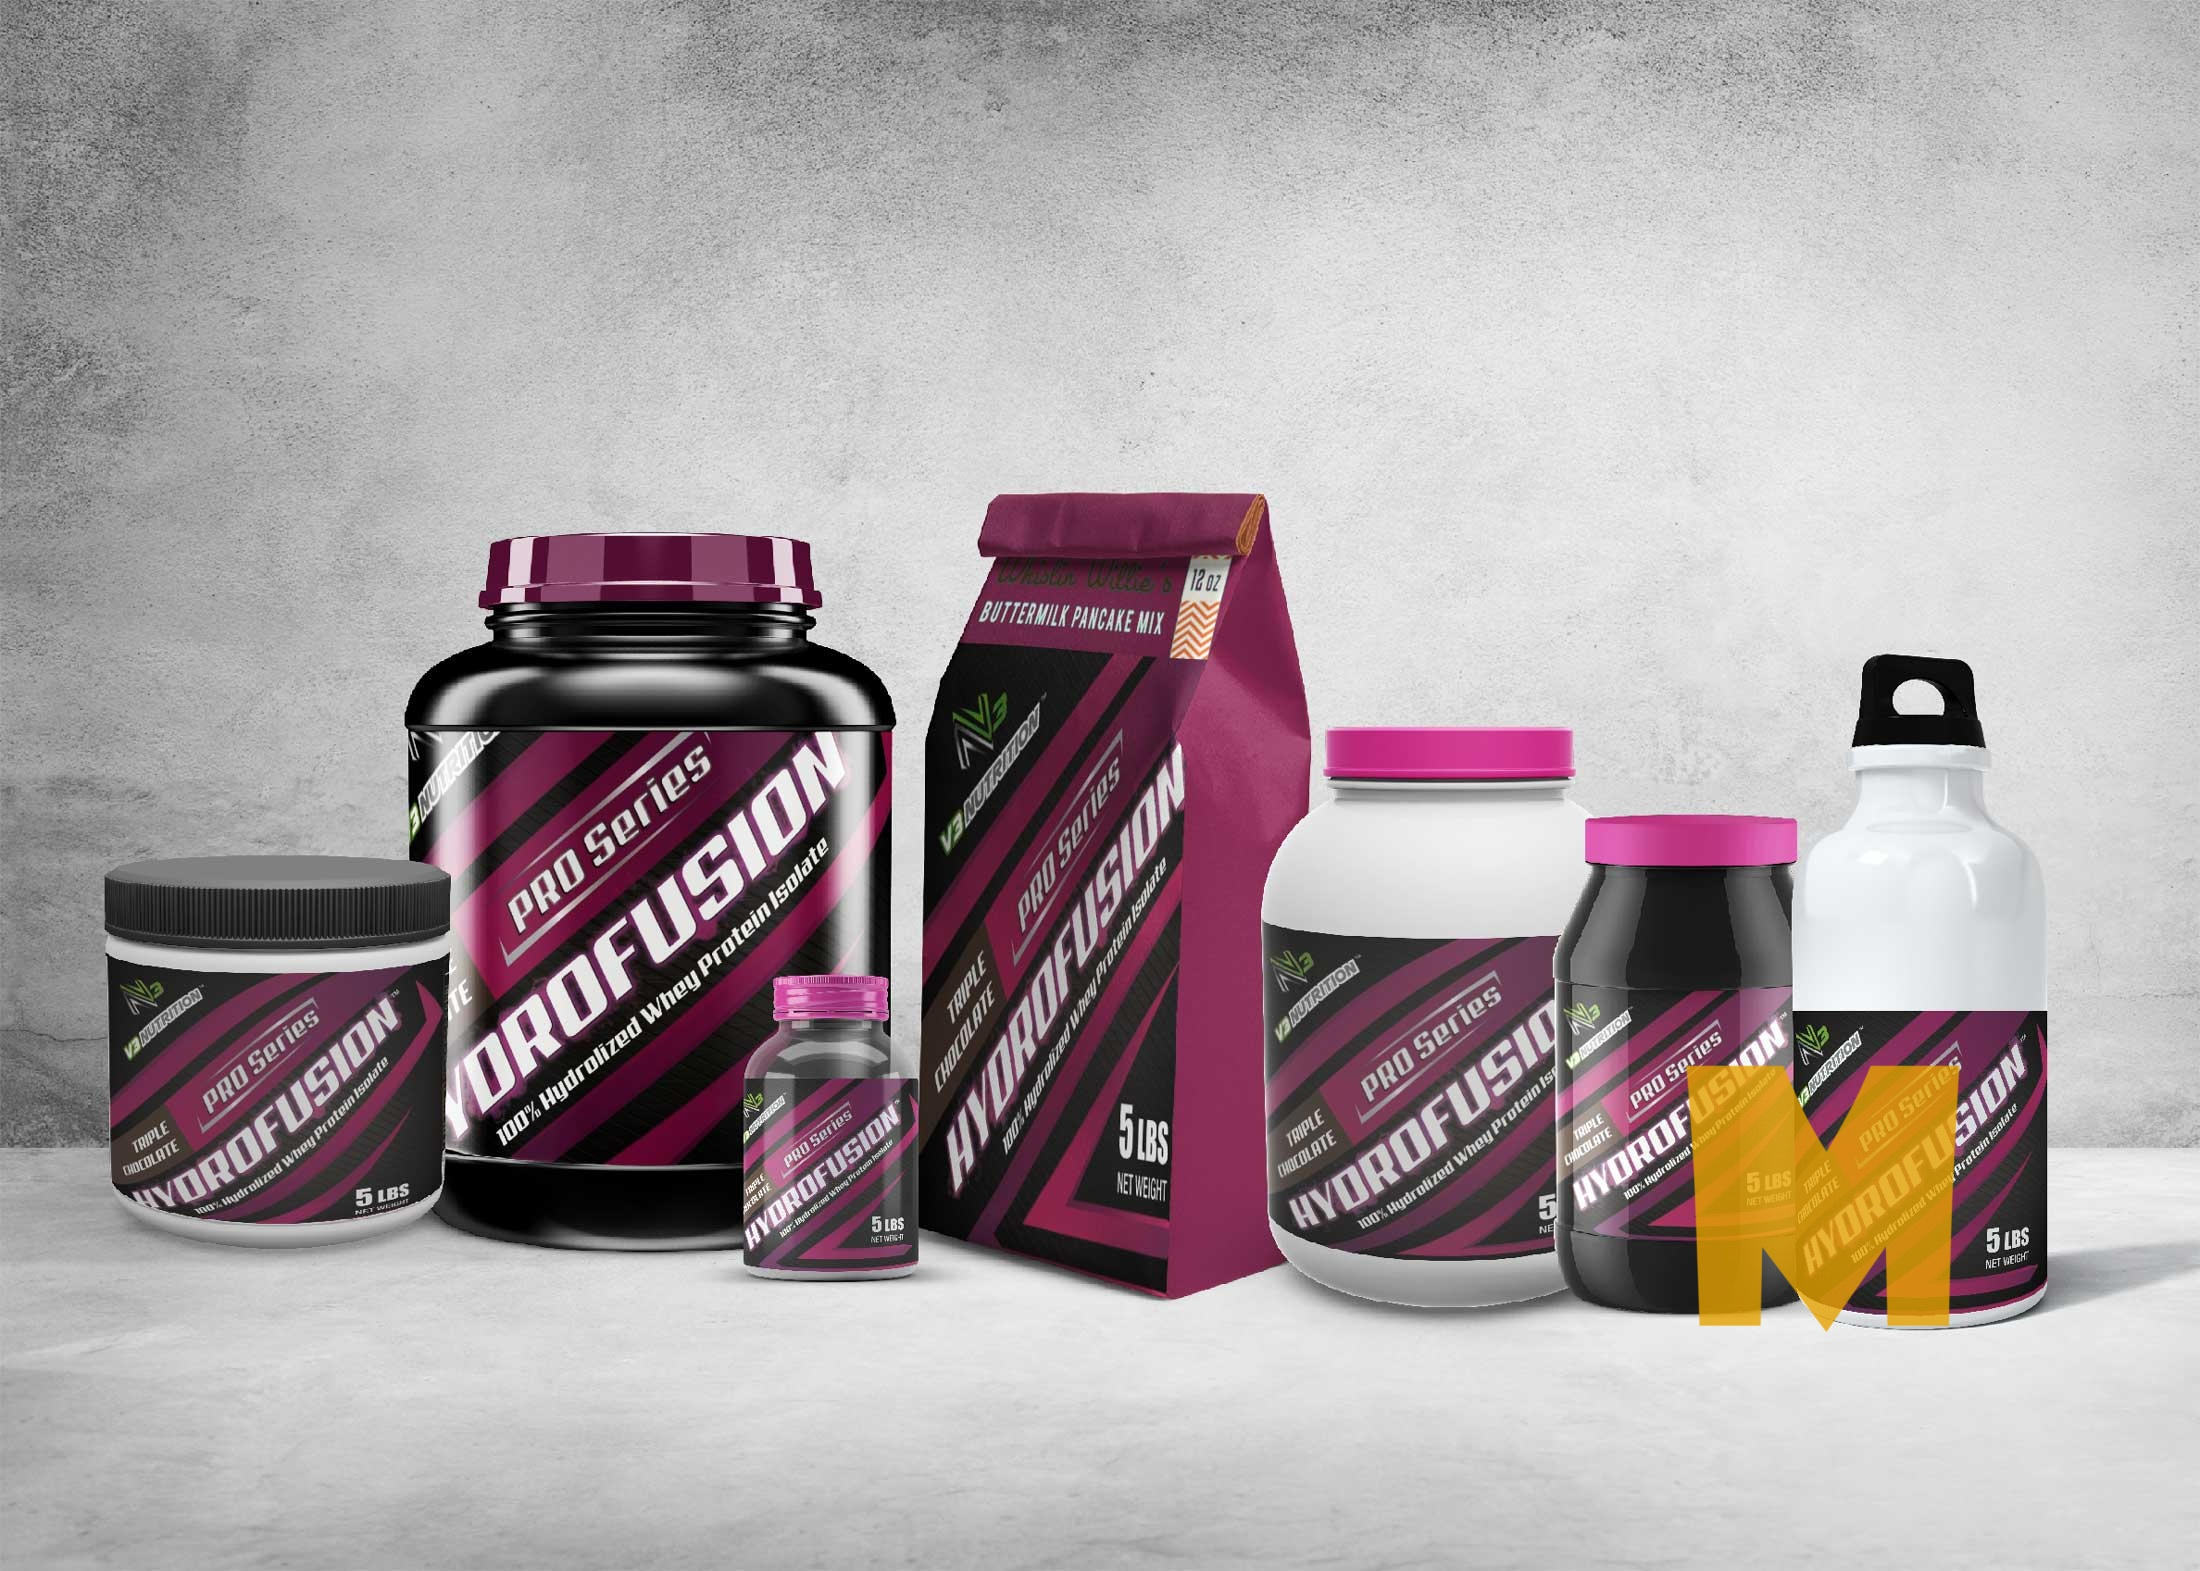 Supplement Scenes Packaging Mockup